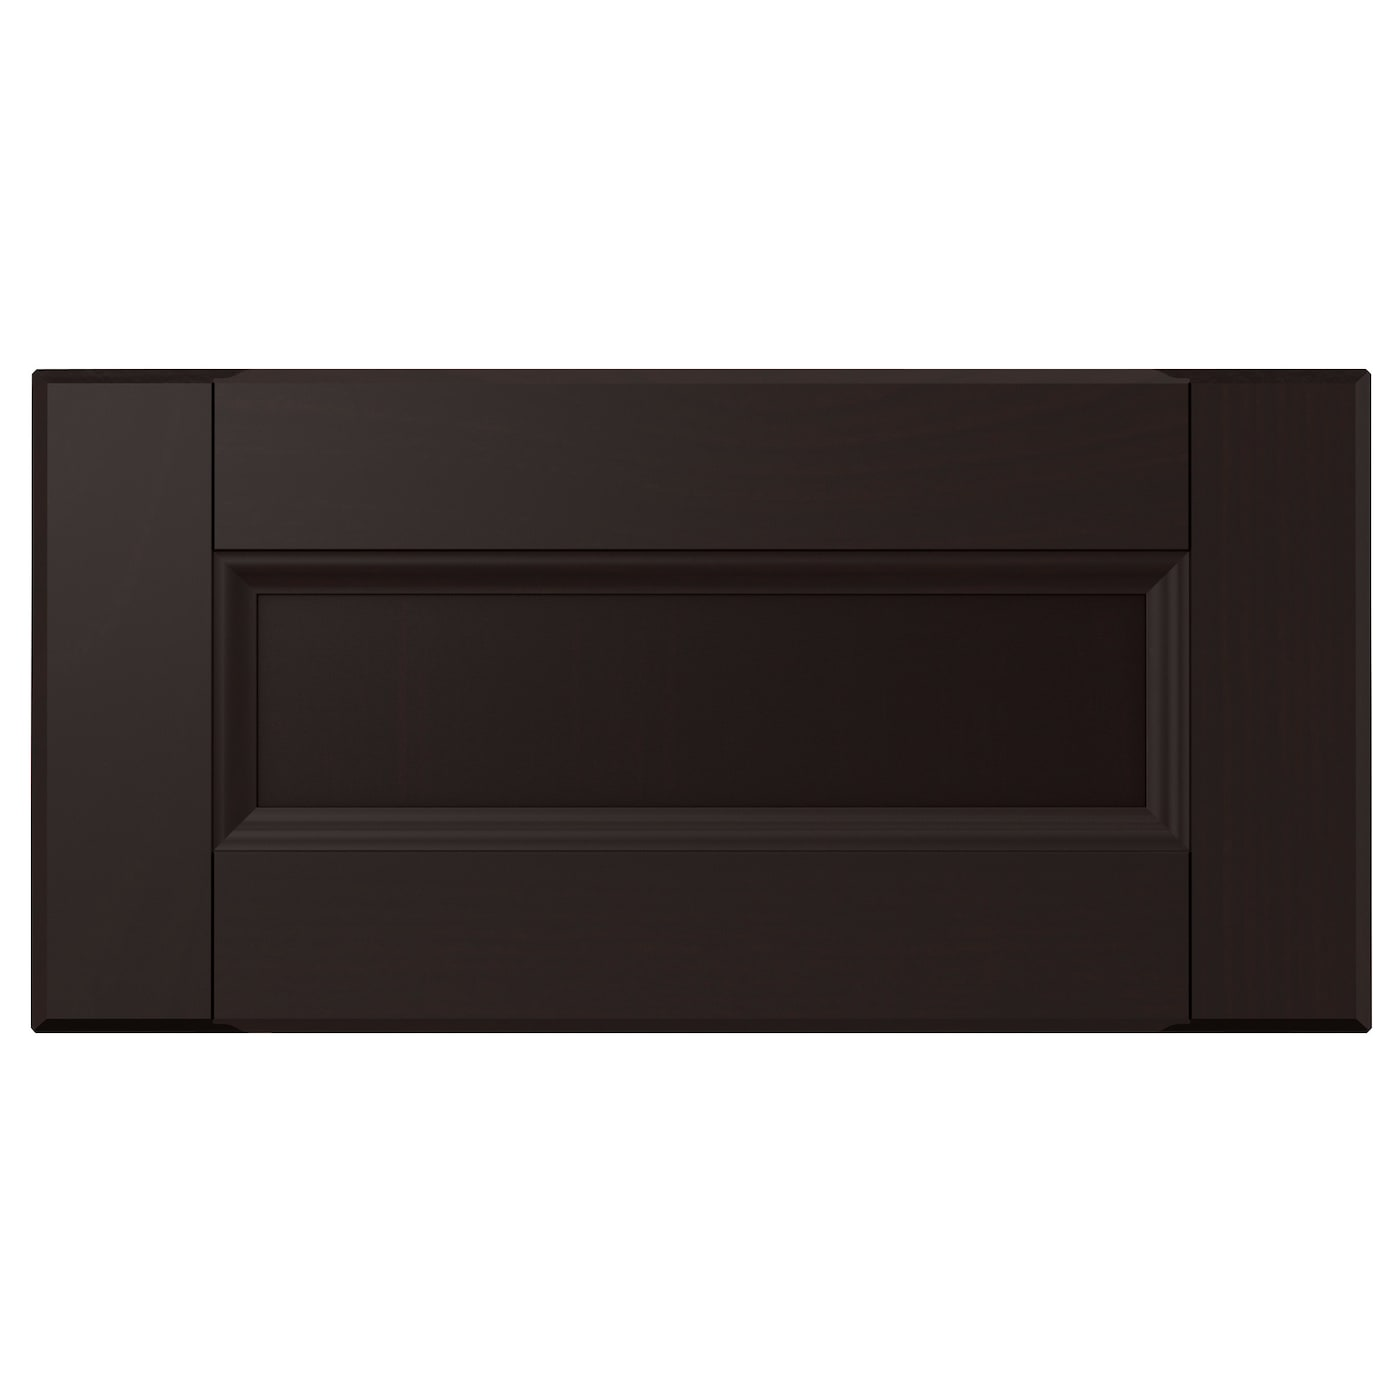 laxarby drawer front black brown 40x20 cm ikea. Black Bedroom Furniture Sets. Home Design Ideas